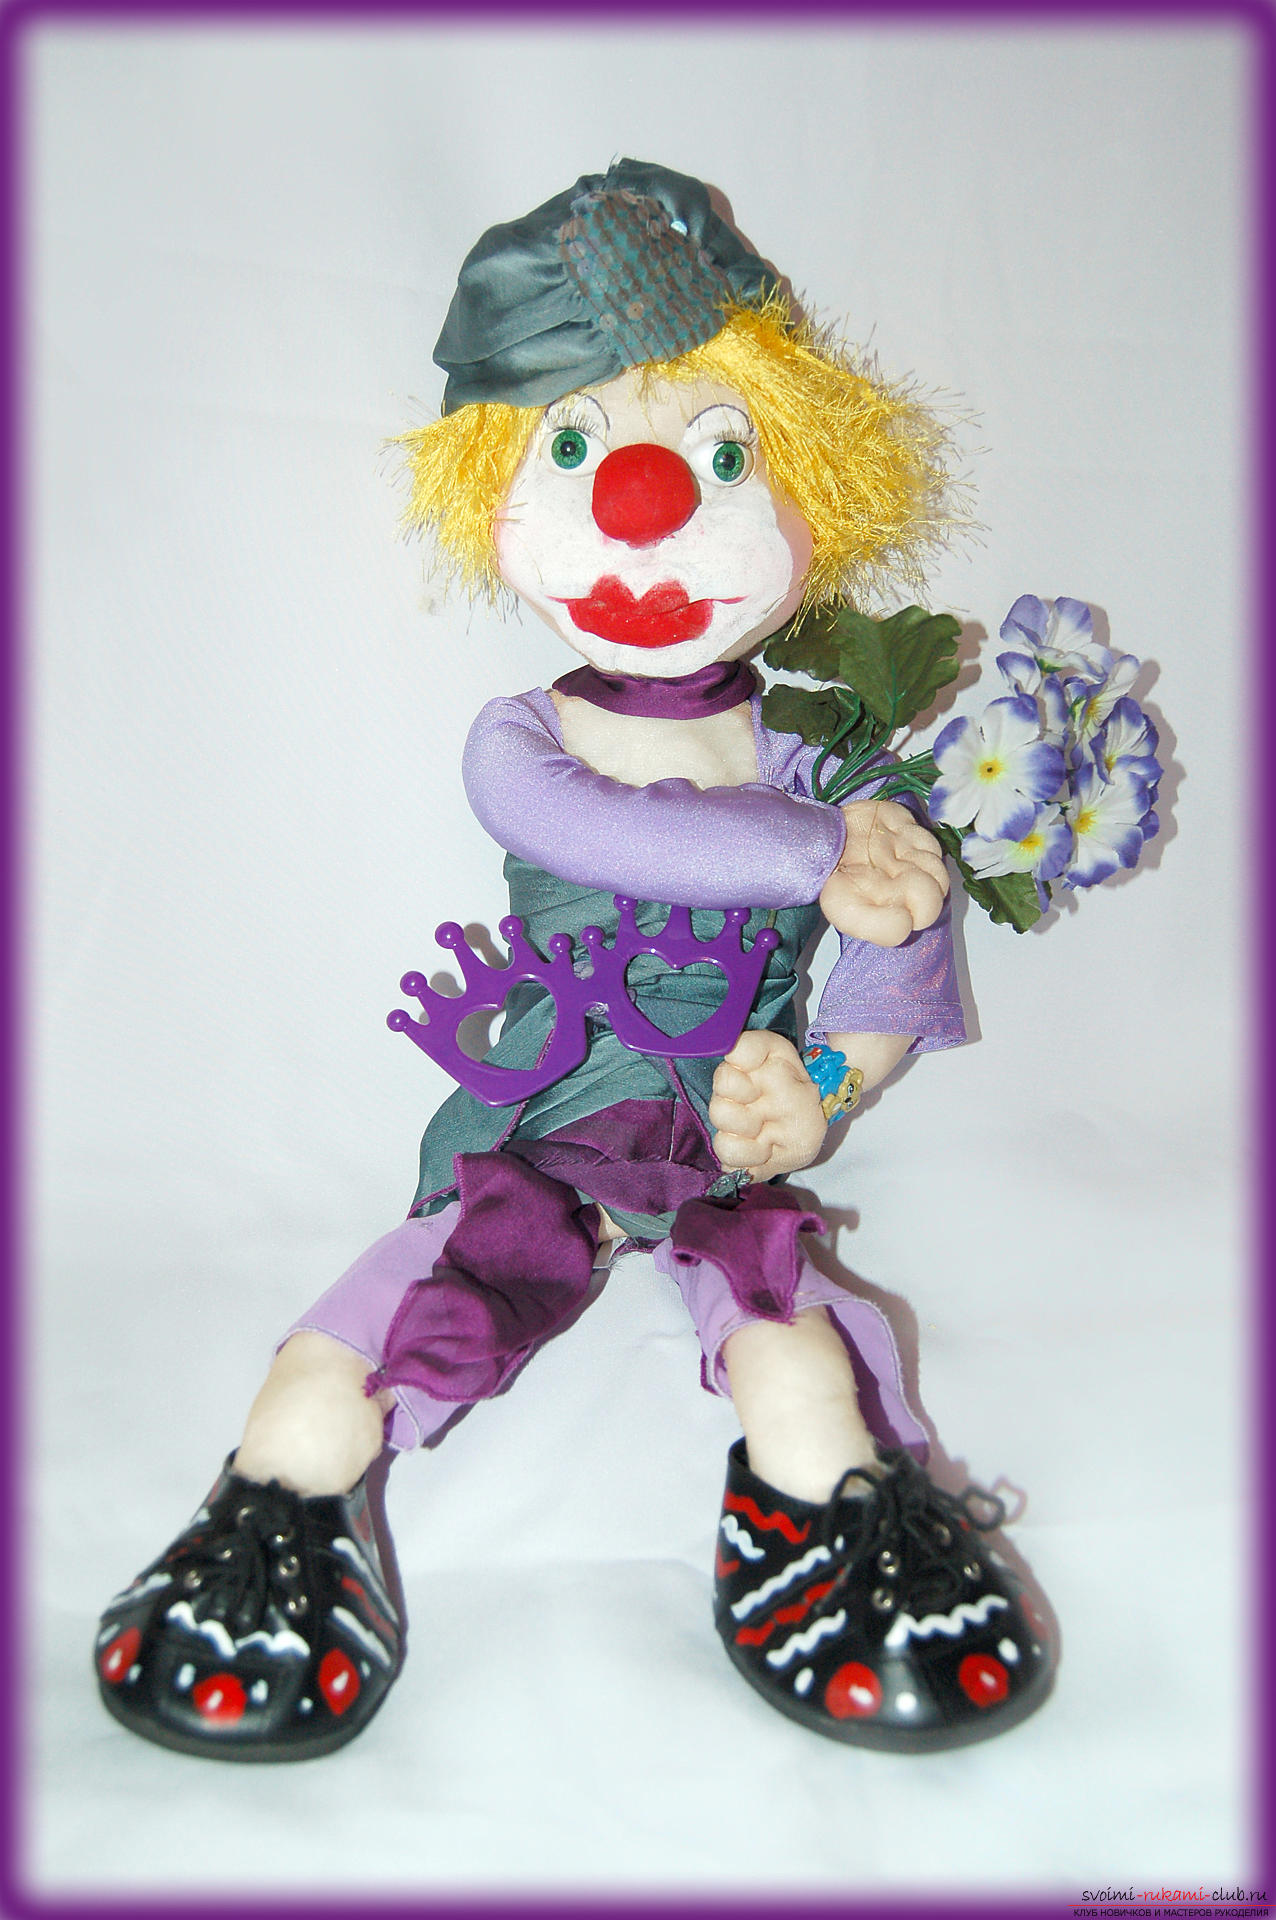 Interior doll: clown. Photo №1